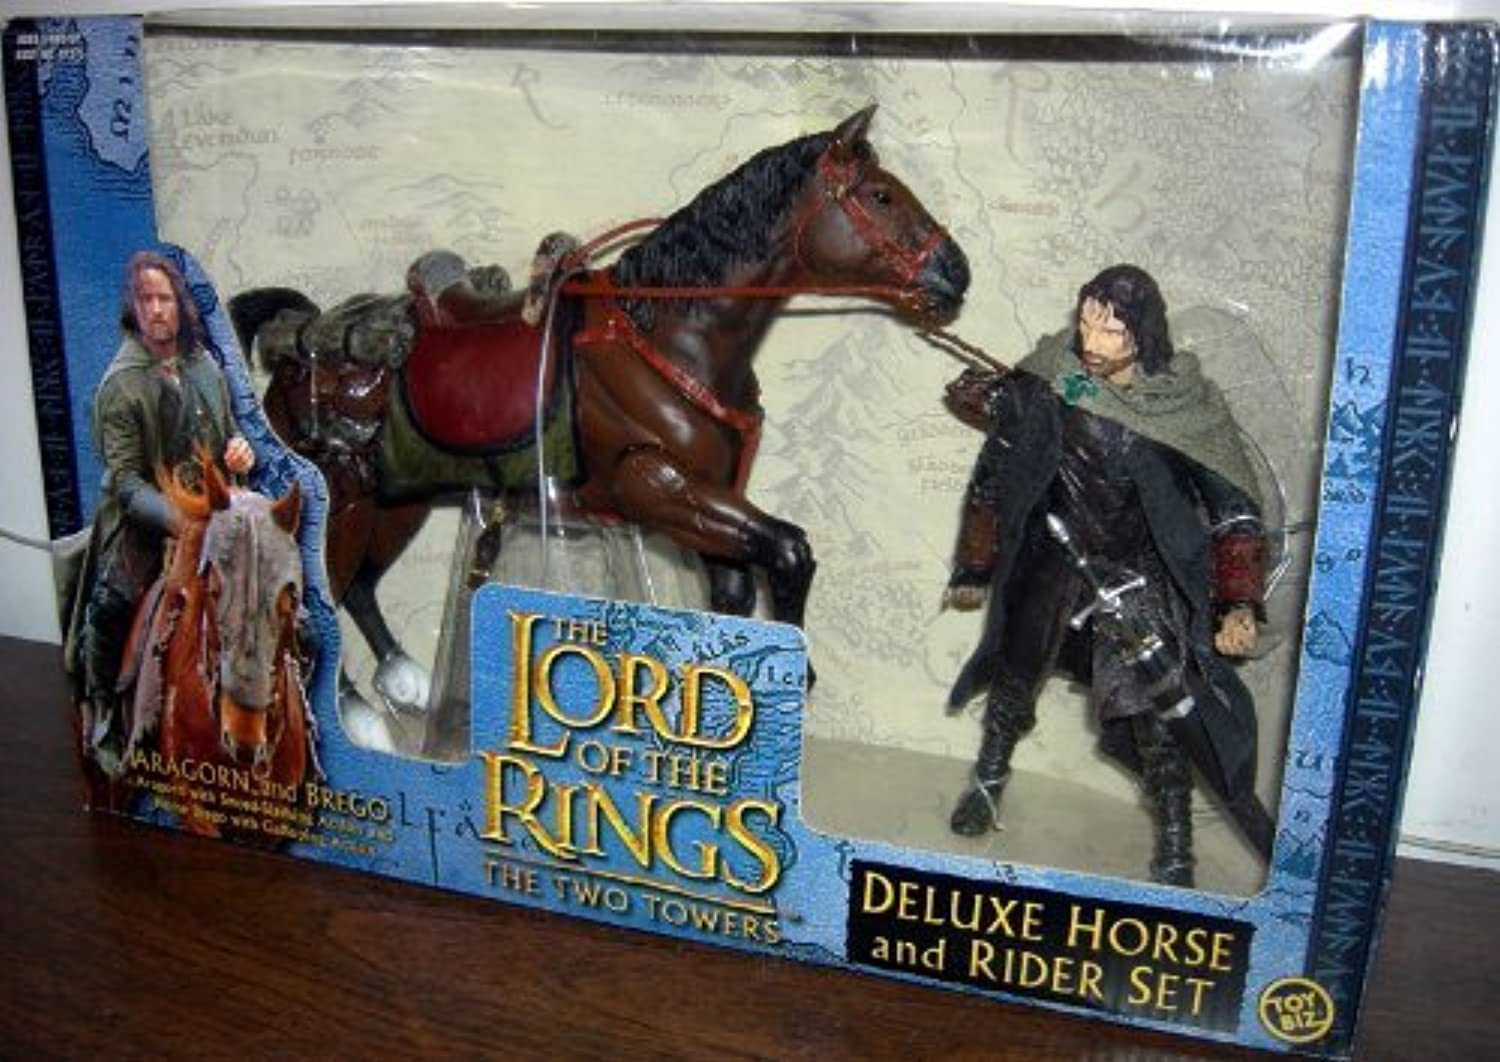 Aragorn with Brego  LOTR Return of the King Deluxe Horse and Rider Set by Toy Biz